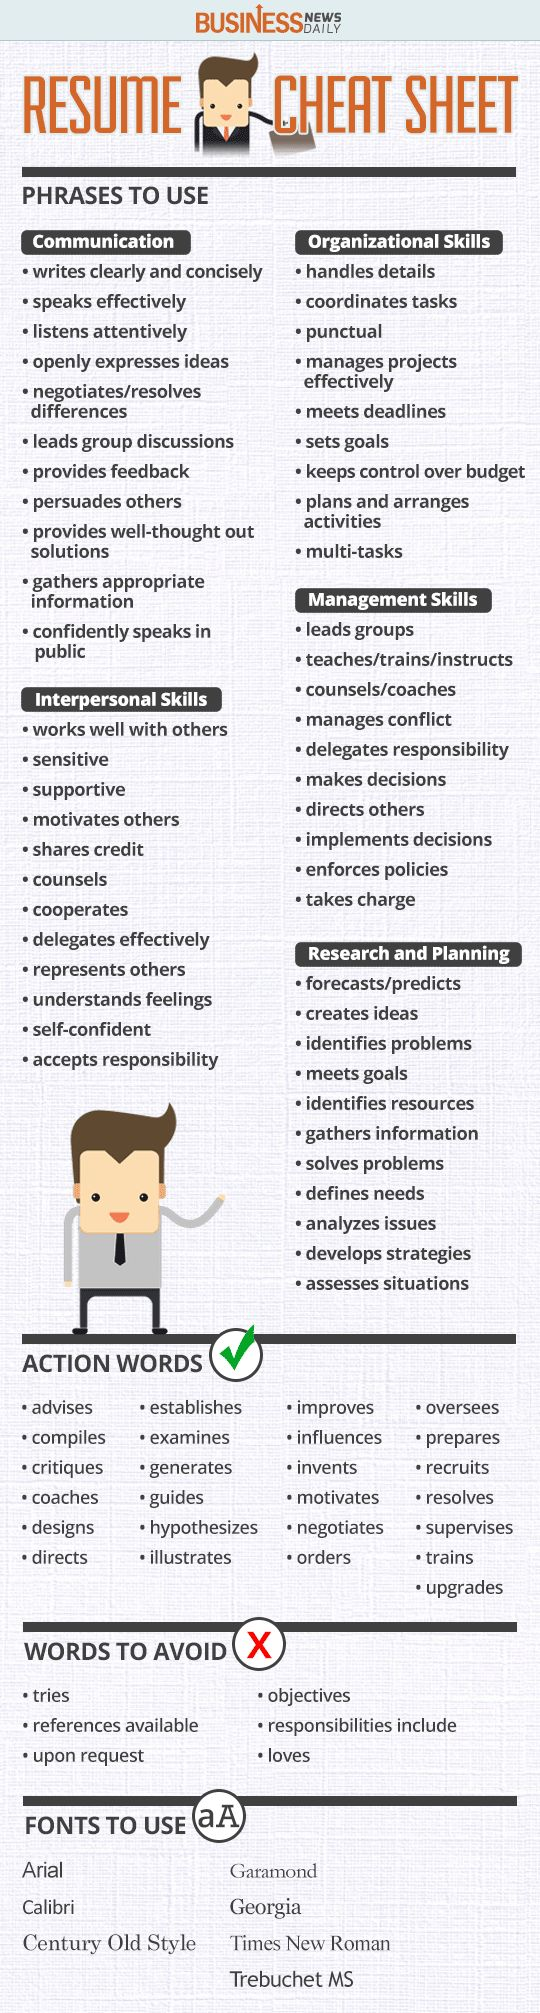 Opposenewapstandardsus  Unique  Ideas About Resume On Pinterest  Cv Format Resume Cv And  With Hot Resume Cheat Sheet Infographic Andrews Almost Done With A Complete Unit On Employment Which With Beauteous Post Resume On Indeed Also Best Resume Layout In Addition Driver Resume And Office Clerk Resume As Well As Beowulf Resume Additionally Handyman Resume From Pinterestcom With Opposenewapstandardsus  Hot  Ideas About Resume On Pinterest  Cv Format Resume Cv And  With Beauteous Resume Cheat Sheet Infographic Andrews Almost Done With A Complete Unit On Employment Which And Unique Post Resume On Indeed Also Best Resume Layout In Addition Driver Resume From Pinterestcom